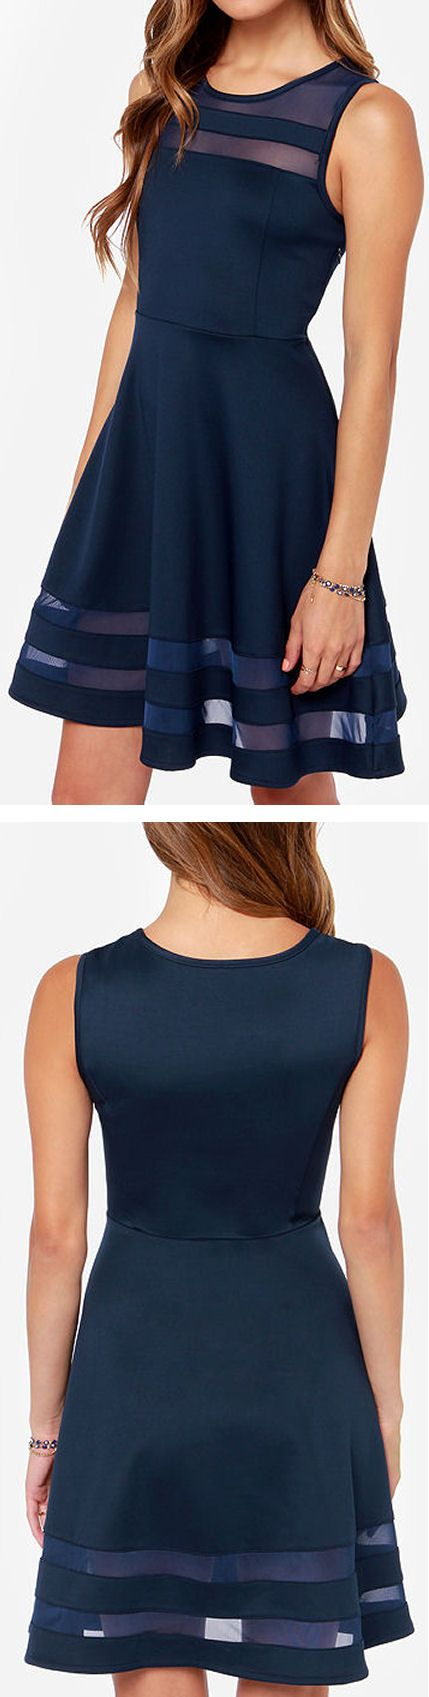 Sheer Navy Stripe Skater Dress ❤︎